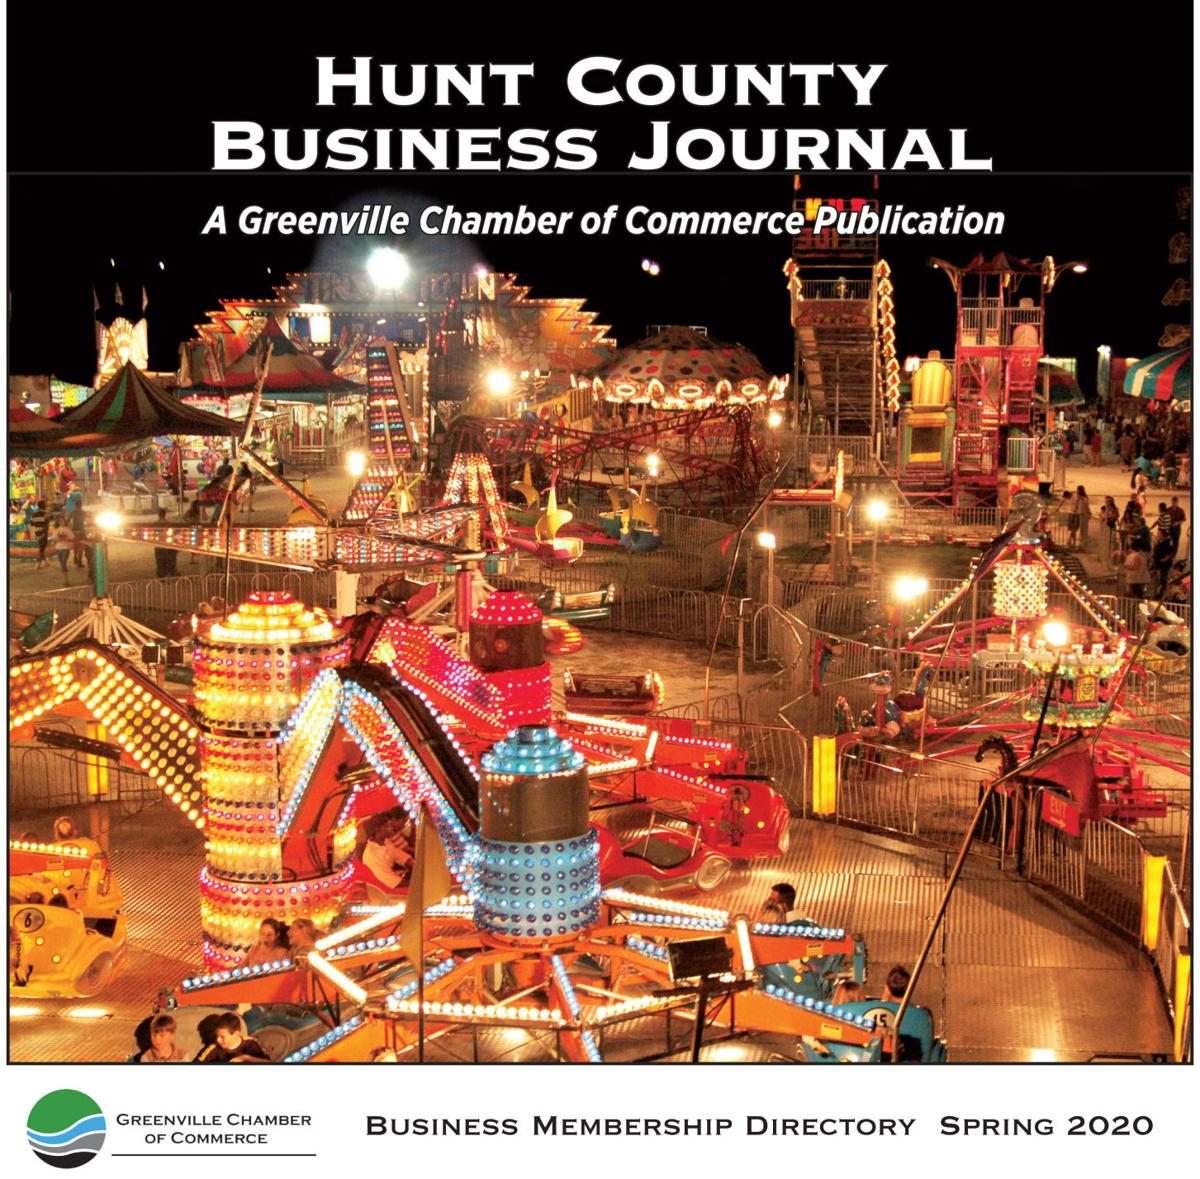 Greenville Chamber of Commerce Business Journal